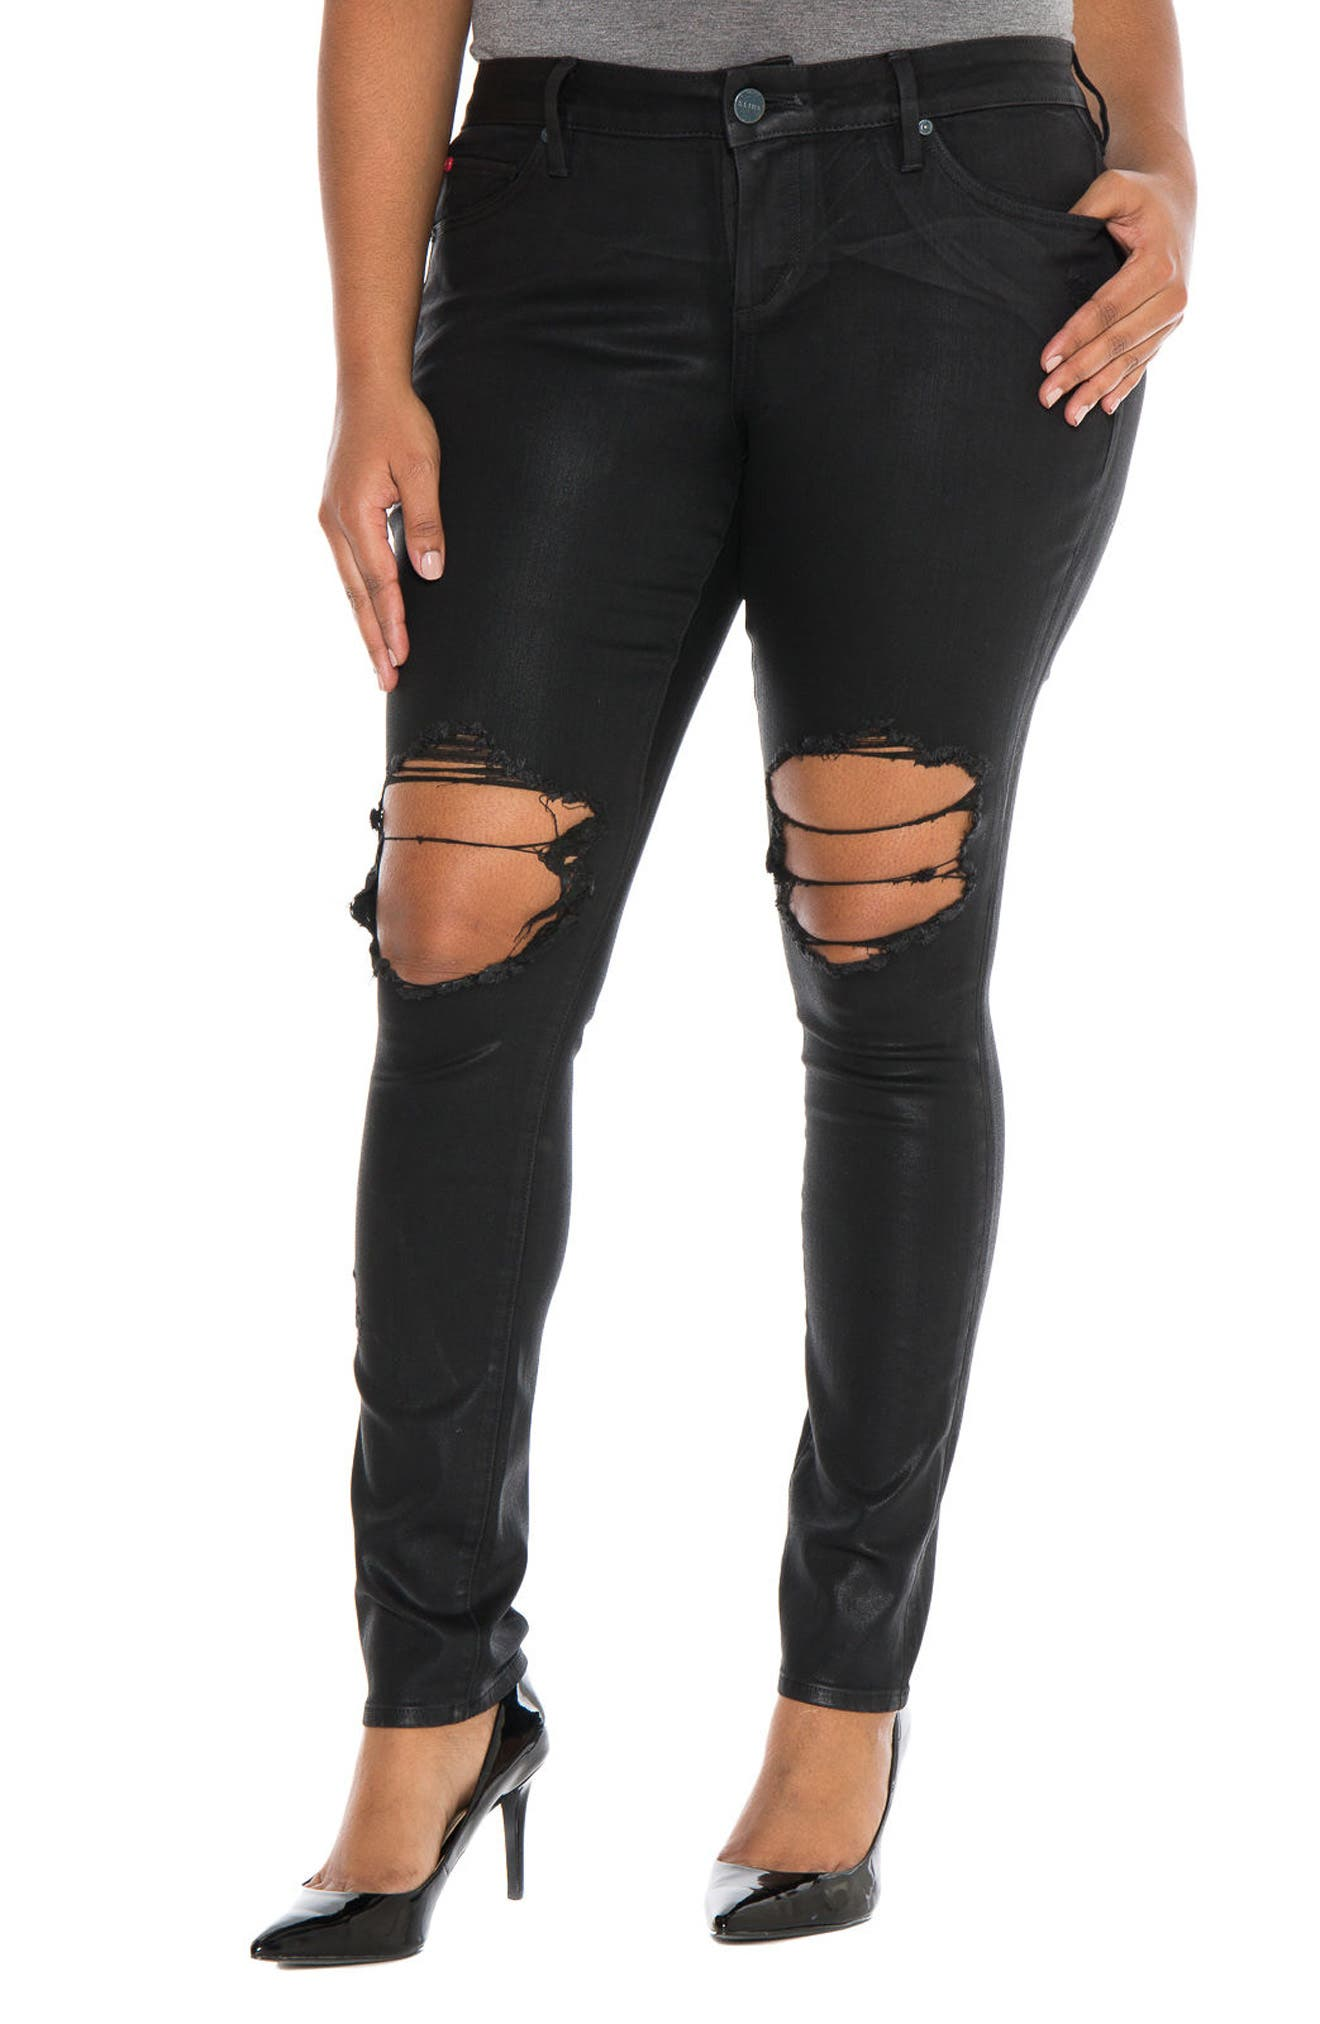 SLINK Jeans Destroyed Coated Skinny Jeans (Silvia) (Plus Size)